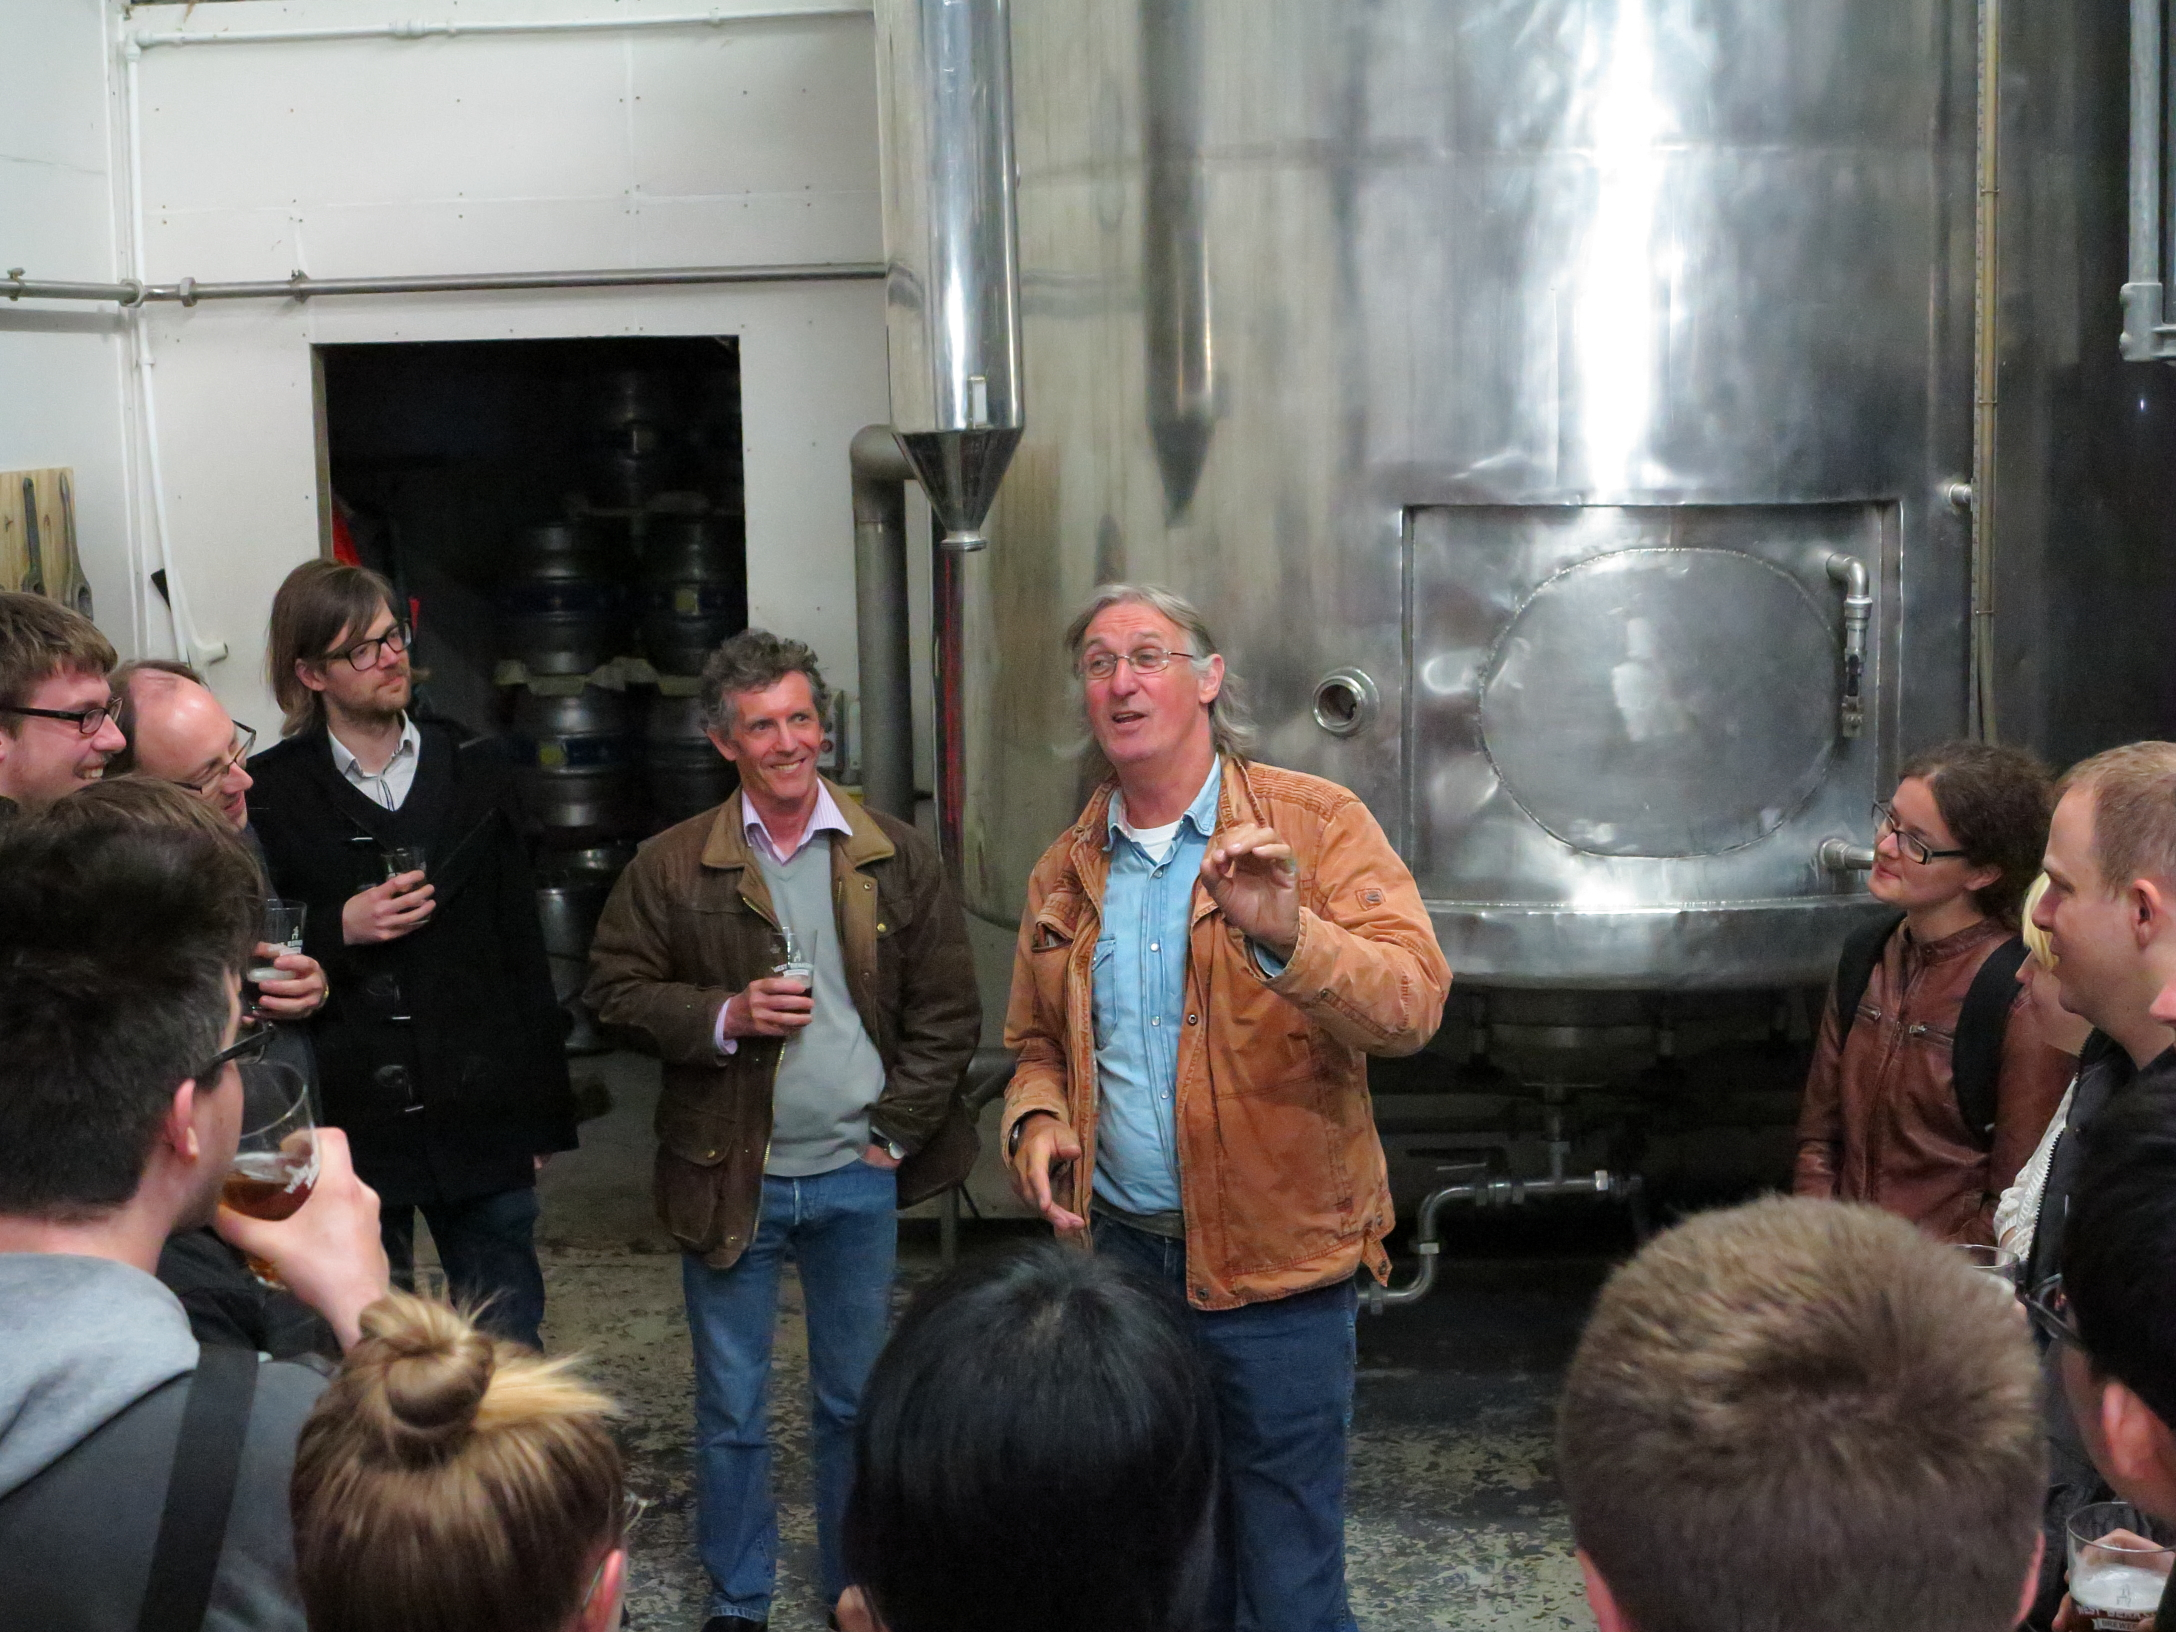 Dave explains brewing